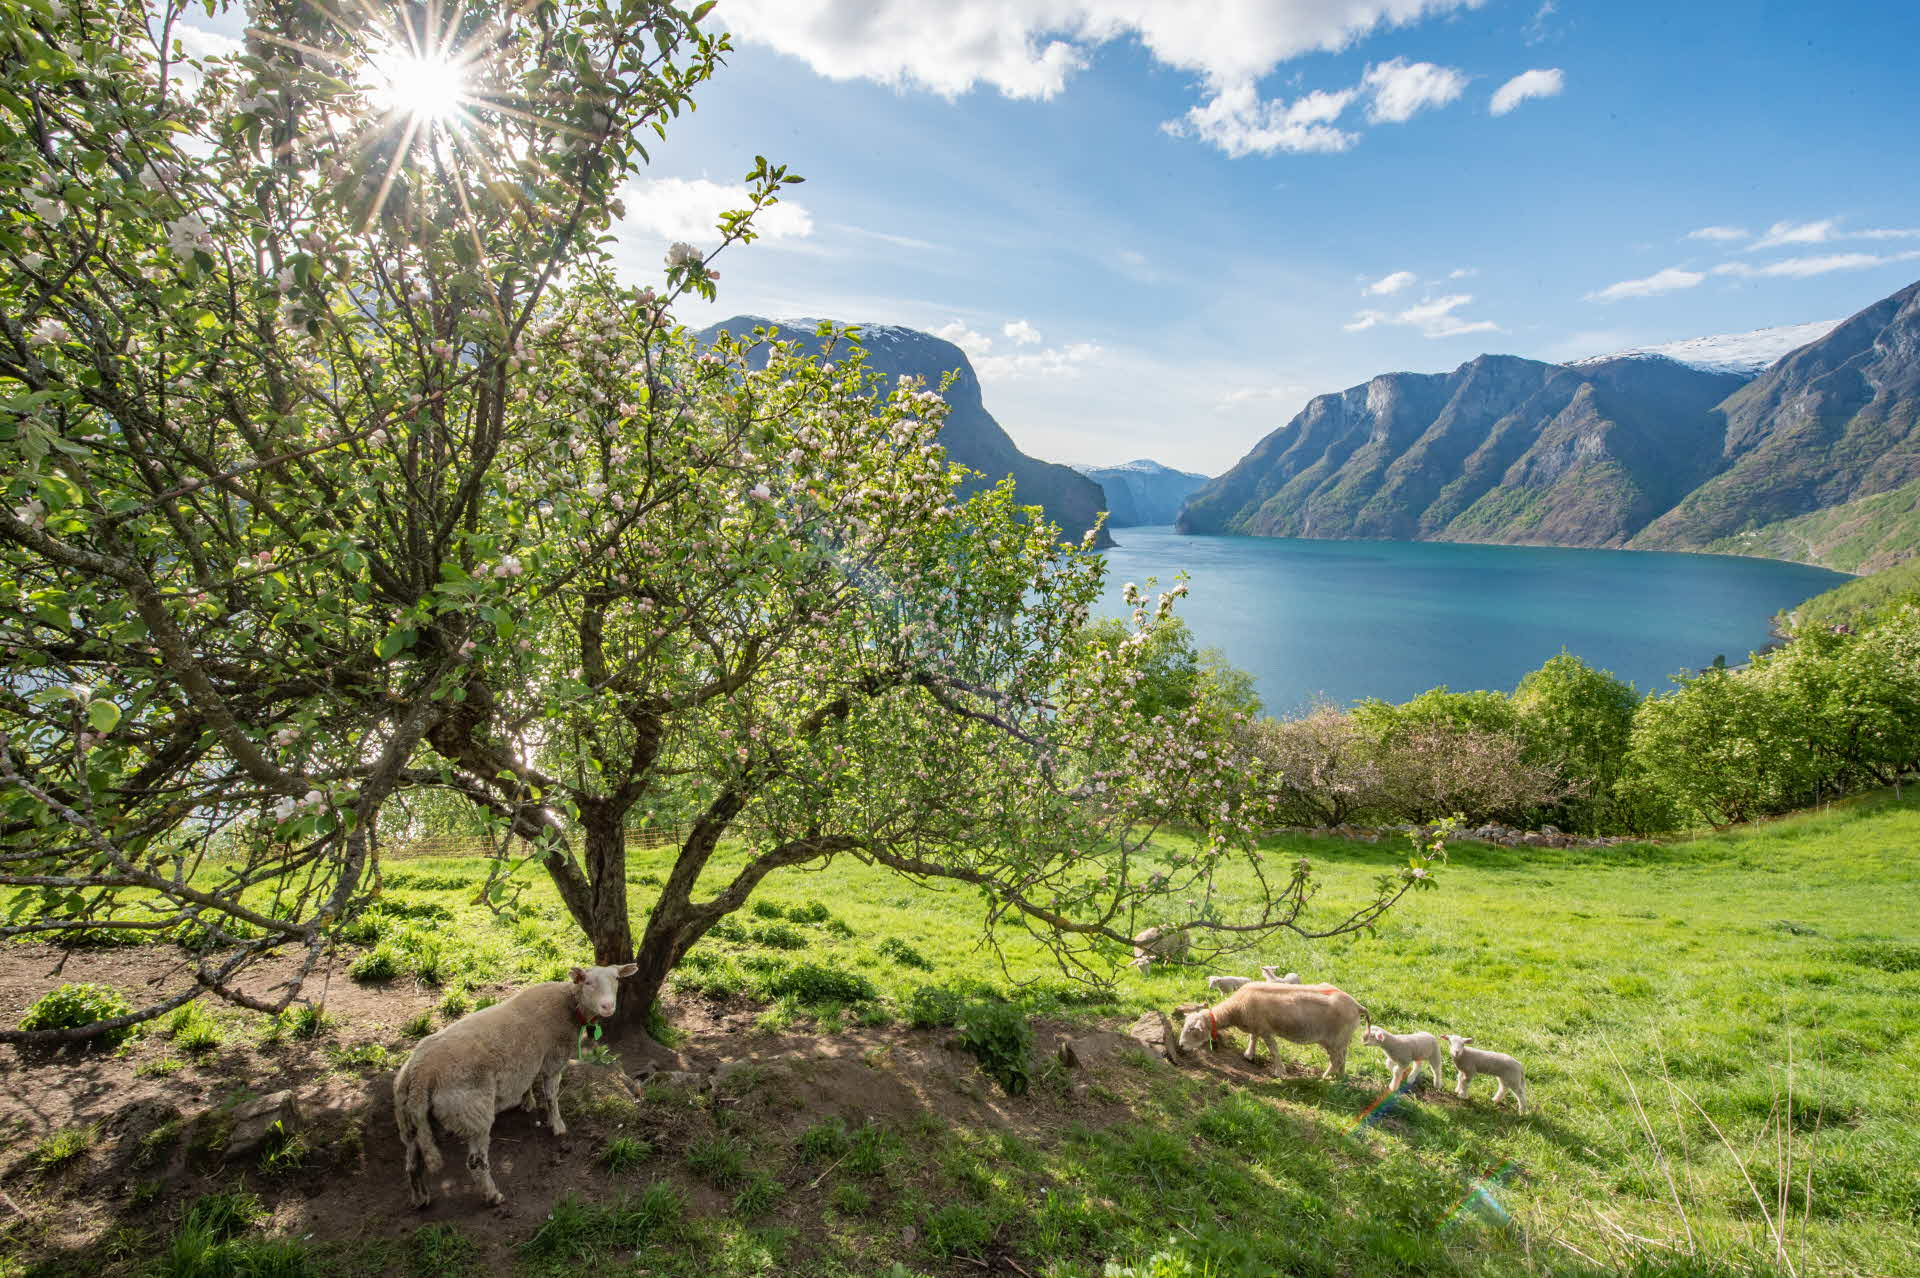 The Aurlandsfjord with apple trees and sheep at the front